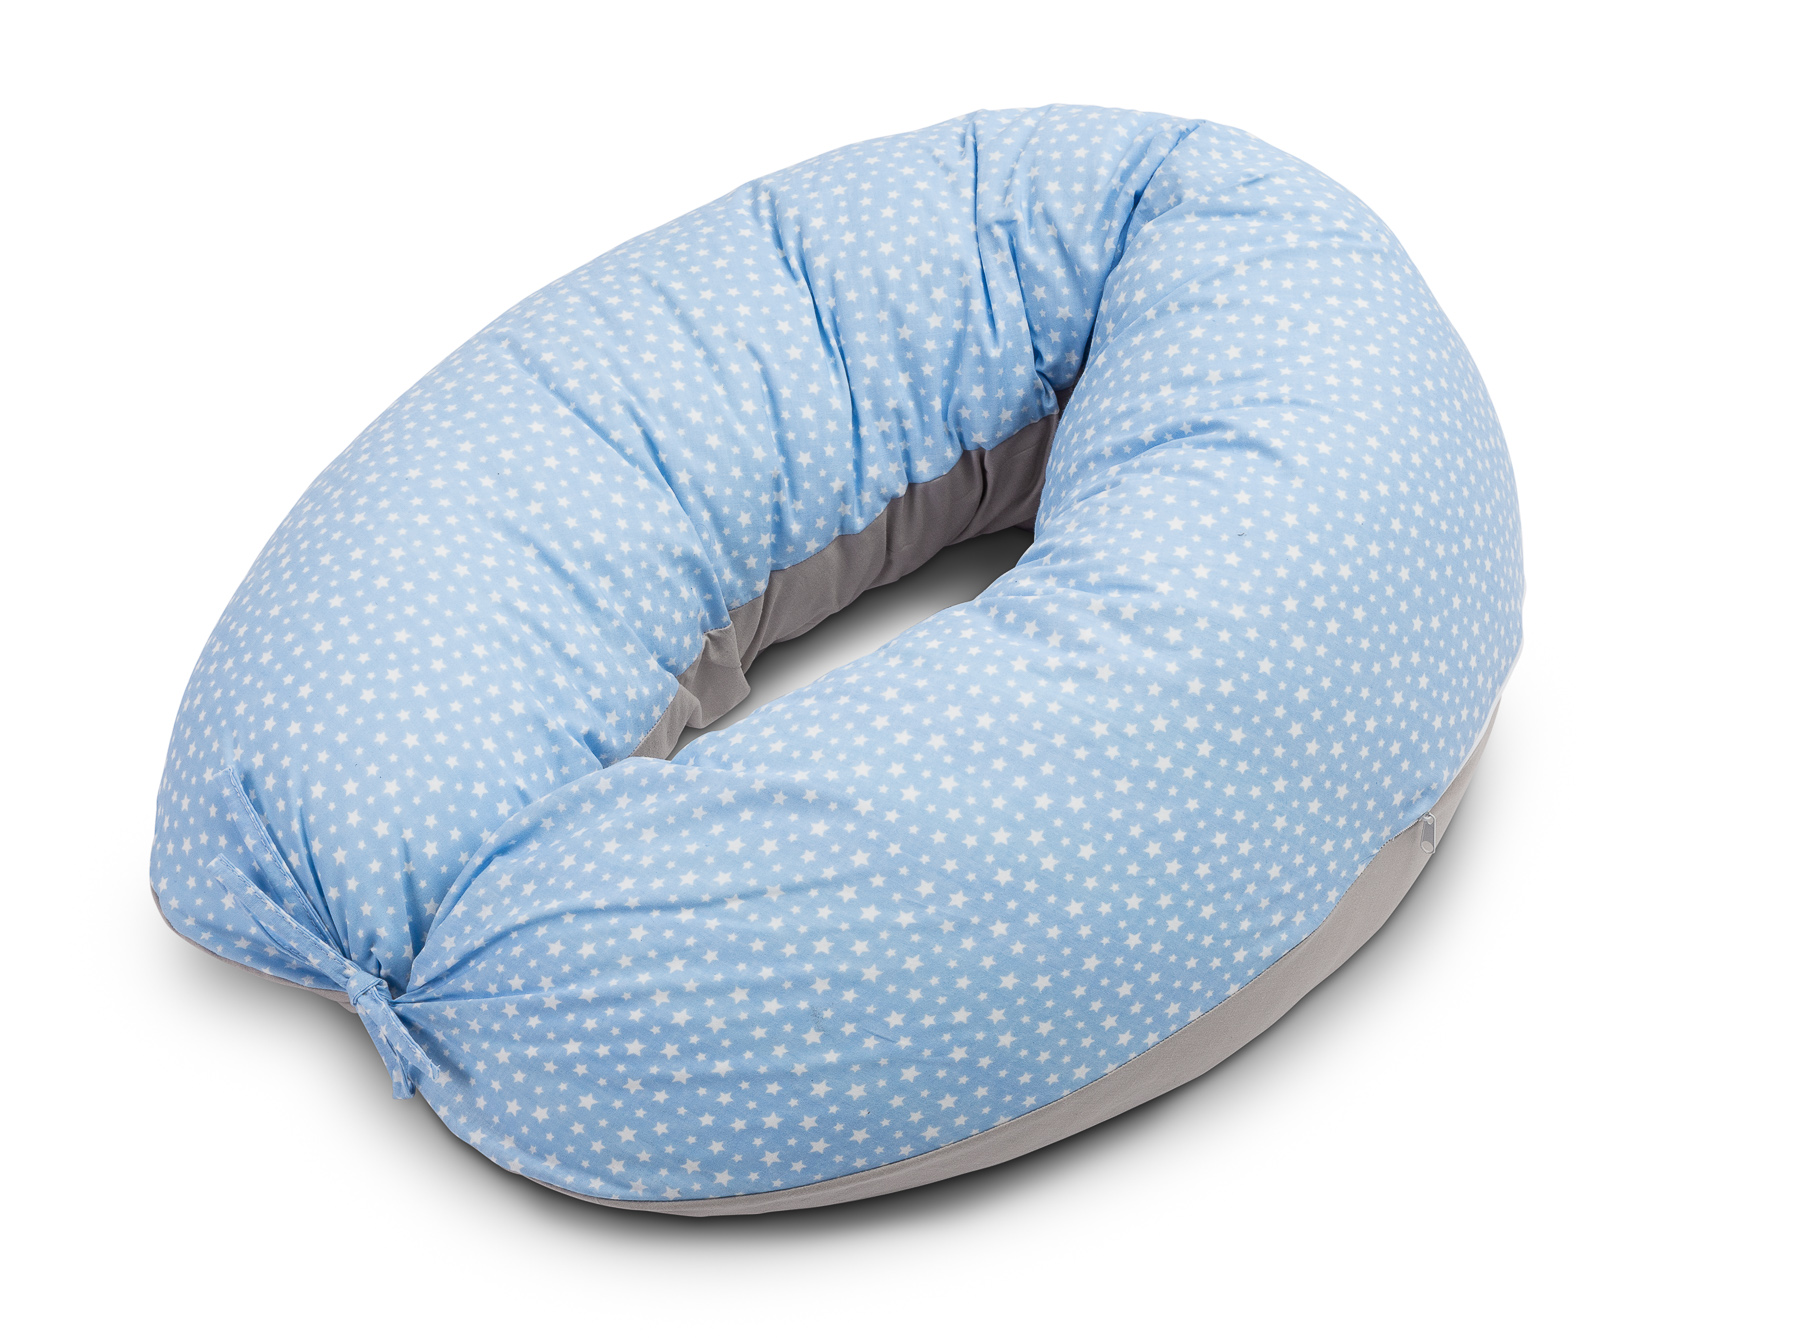 XL Pregnancy Pillow clouds blue